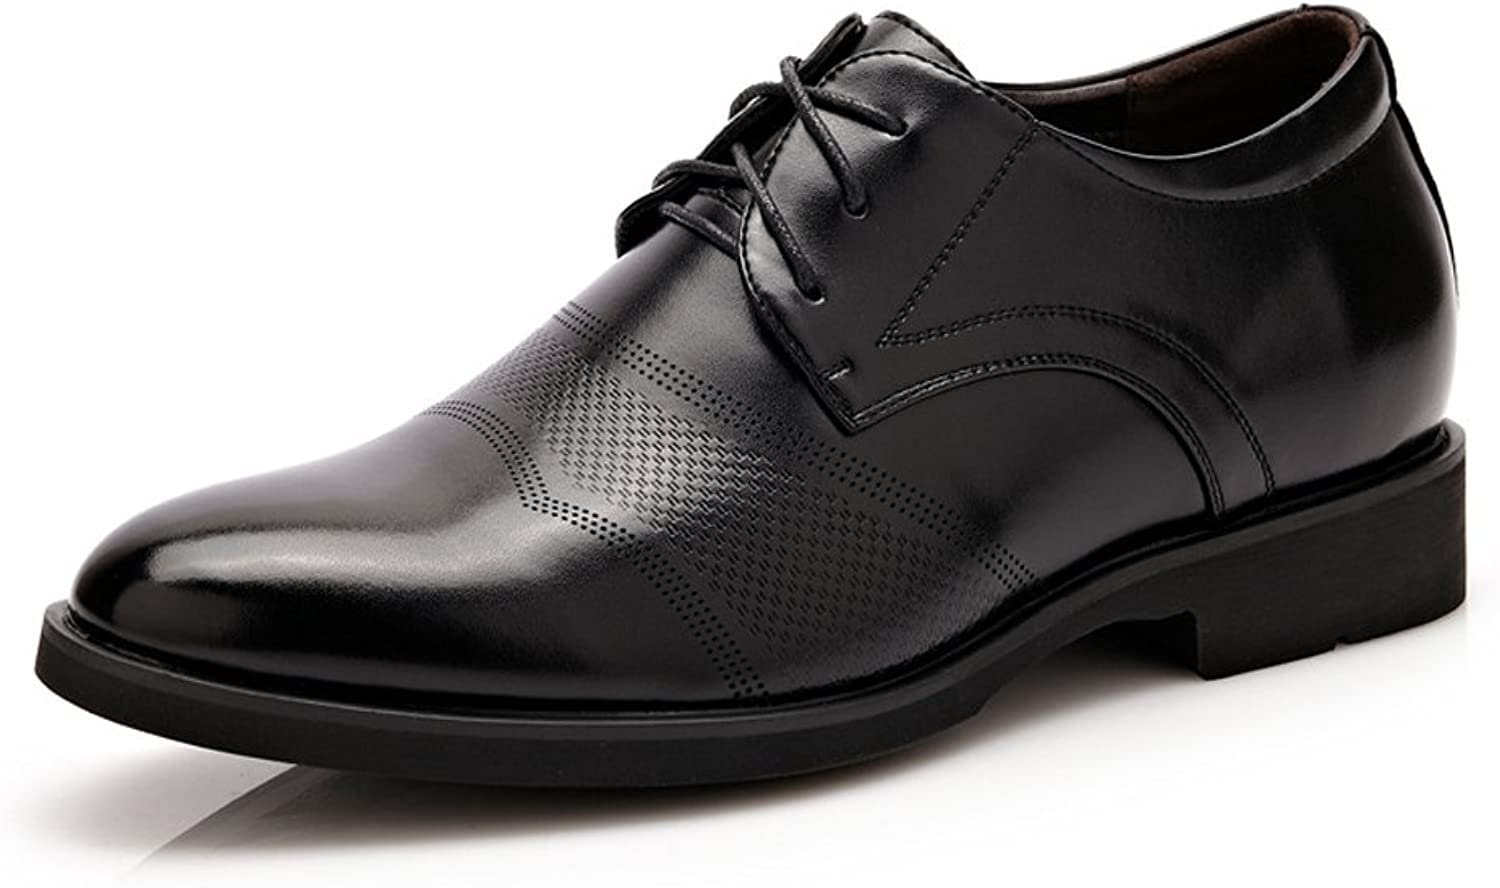 SCSY-Oxford shoes Classic Formal Men's Leather shoes Height Increasing 6cm Breathable Business Modern Shortwing Oxfords